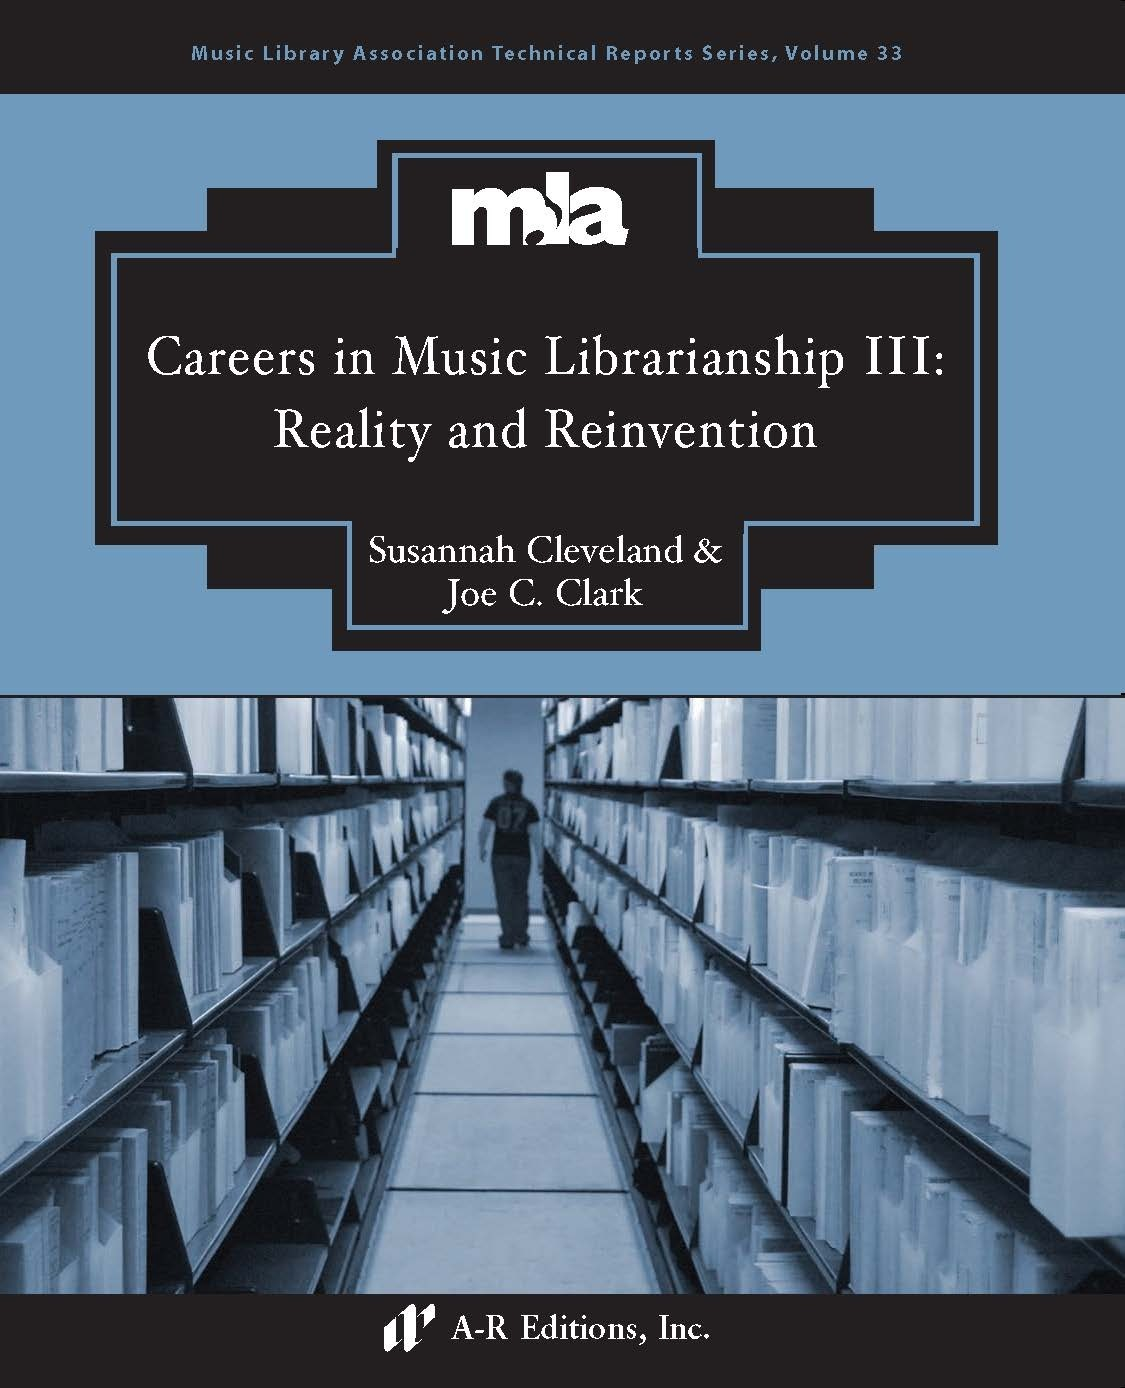 Cleveland and Clark, eds.: Careers in Music Librarianship III